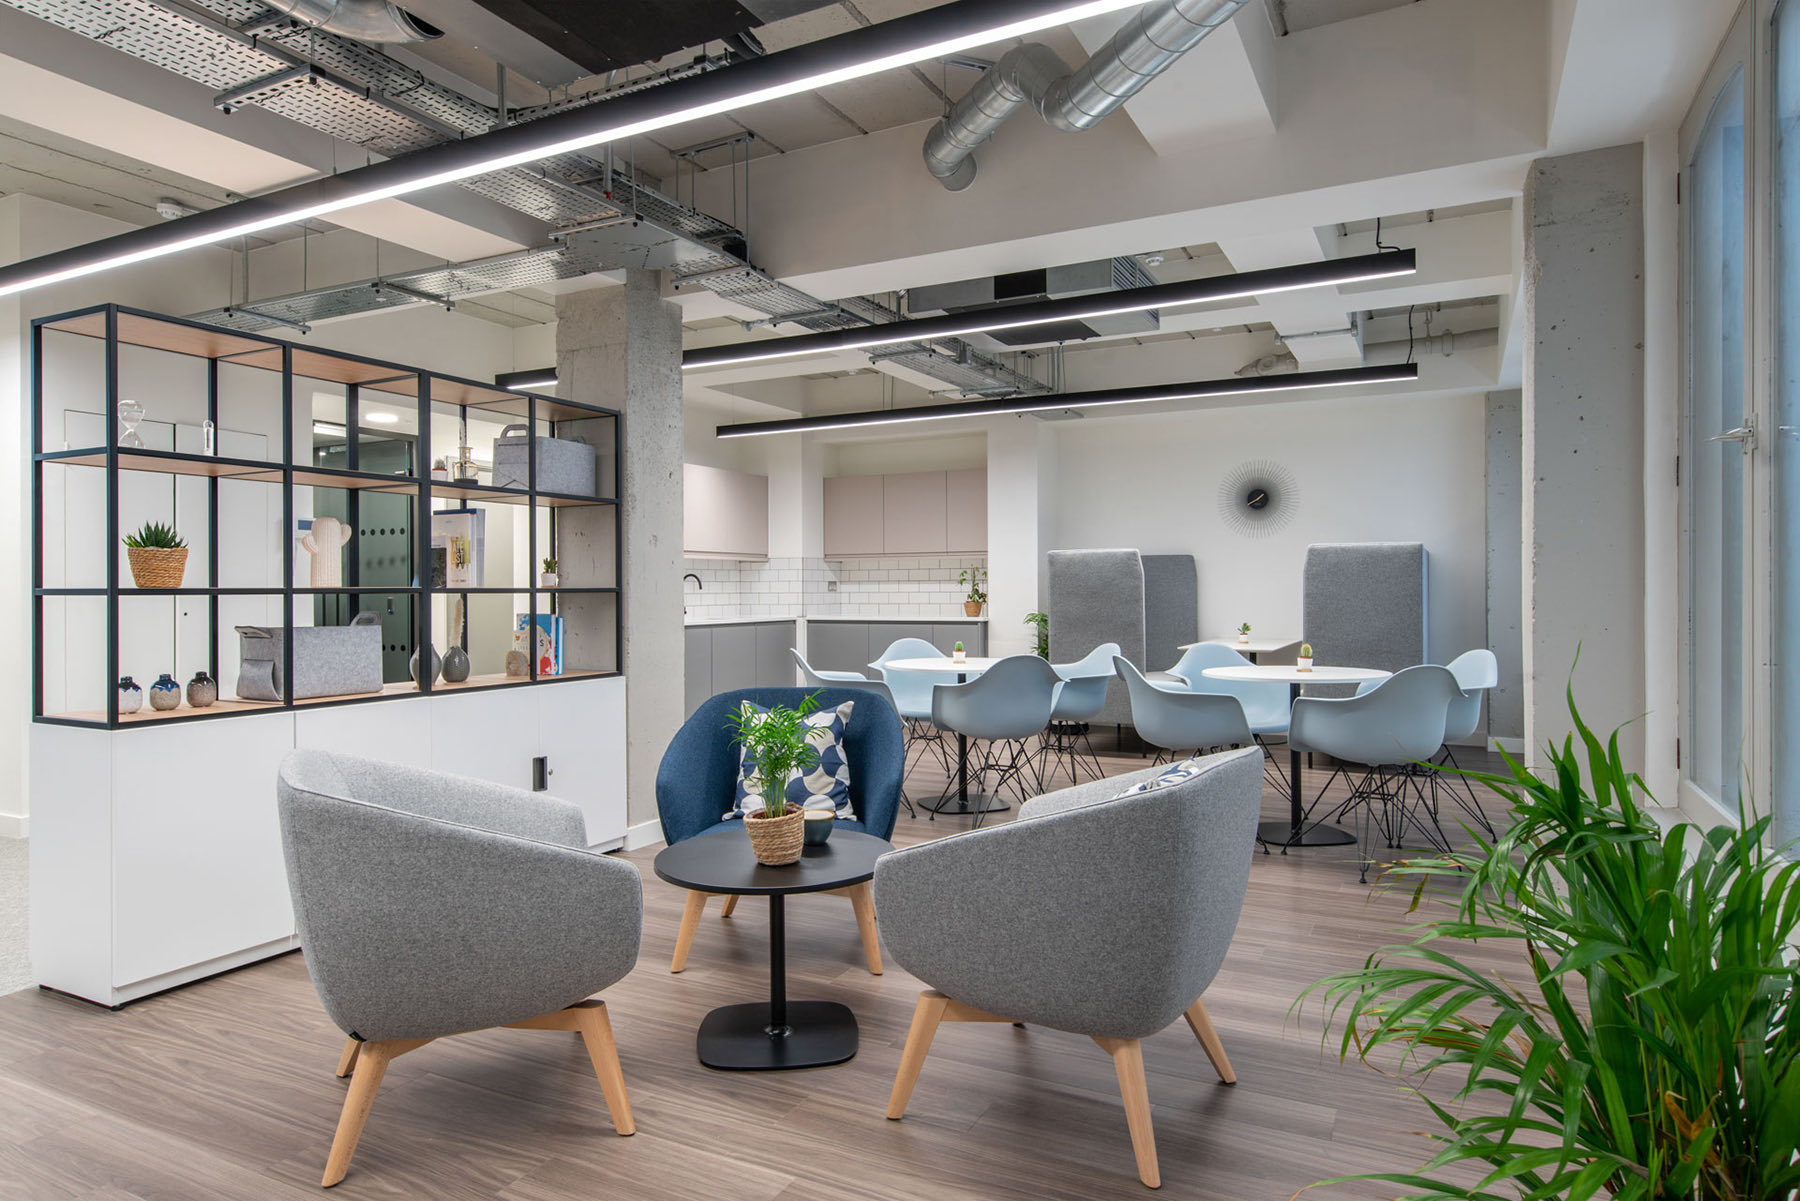 Inside The New Offices of WSS in London